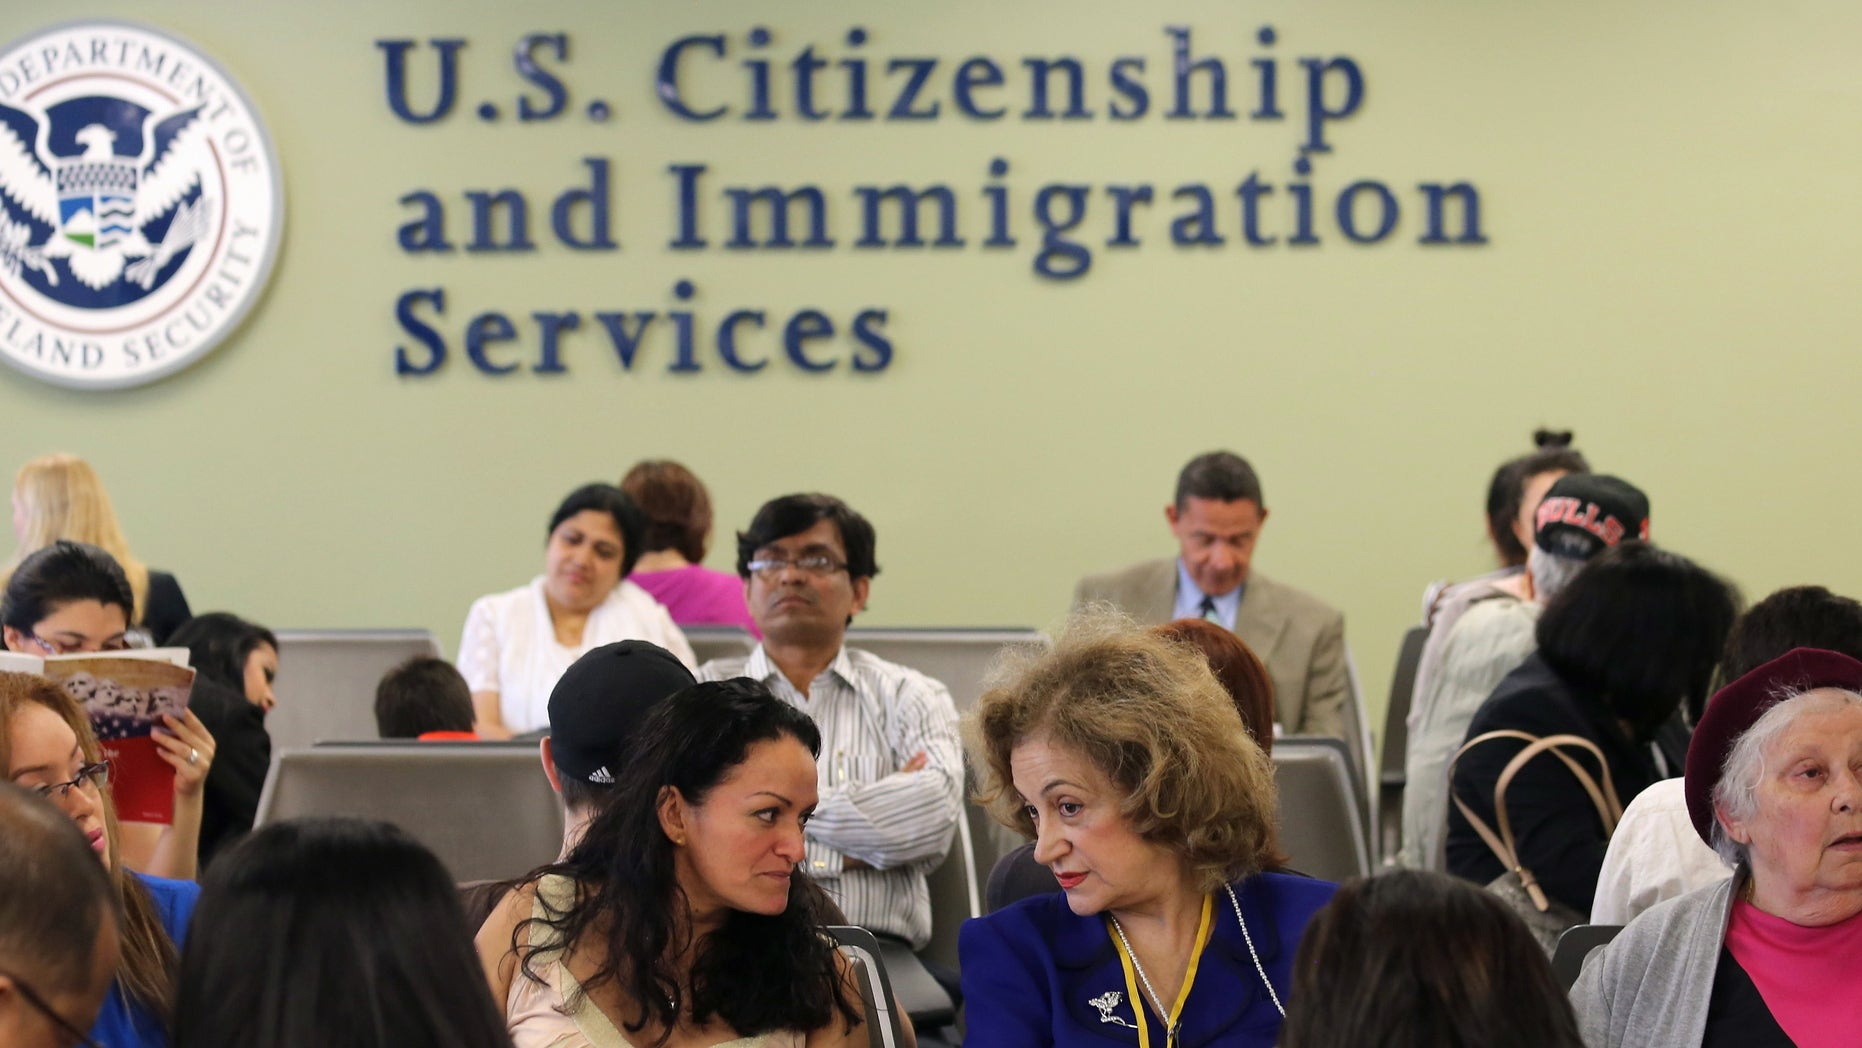 NEW YORK, NY - MAY 30:  Immigrants await their turn for green card and citizenship interviews at the U.S. Citizenship and Immigration Services (USCIS) Queens office on May 30, 2013 in the Long Island City neighborhood of the Queens borough of New York City. The branch office is located in an area heavily populated by immigrants and processes thousands of Green Card and U.S. citizenship applications each year.  (Photo by John Moore/Getty Images)